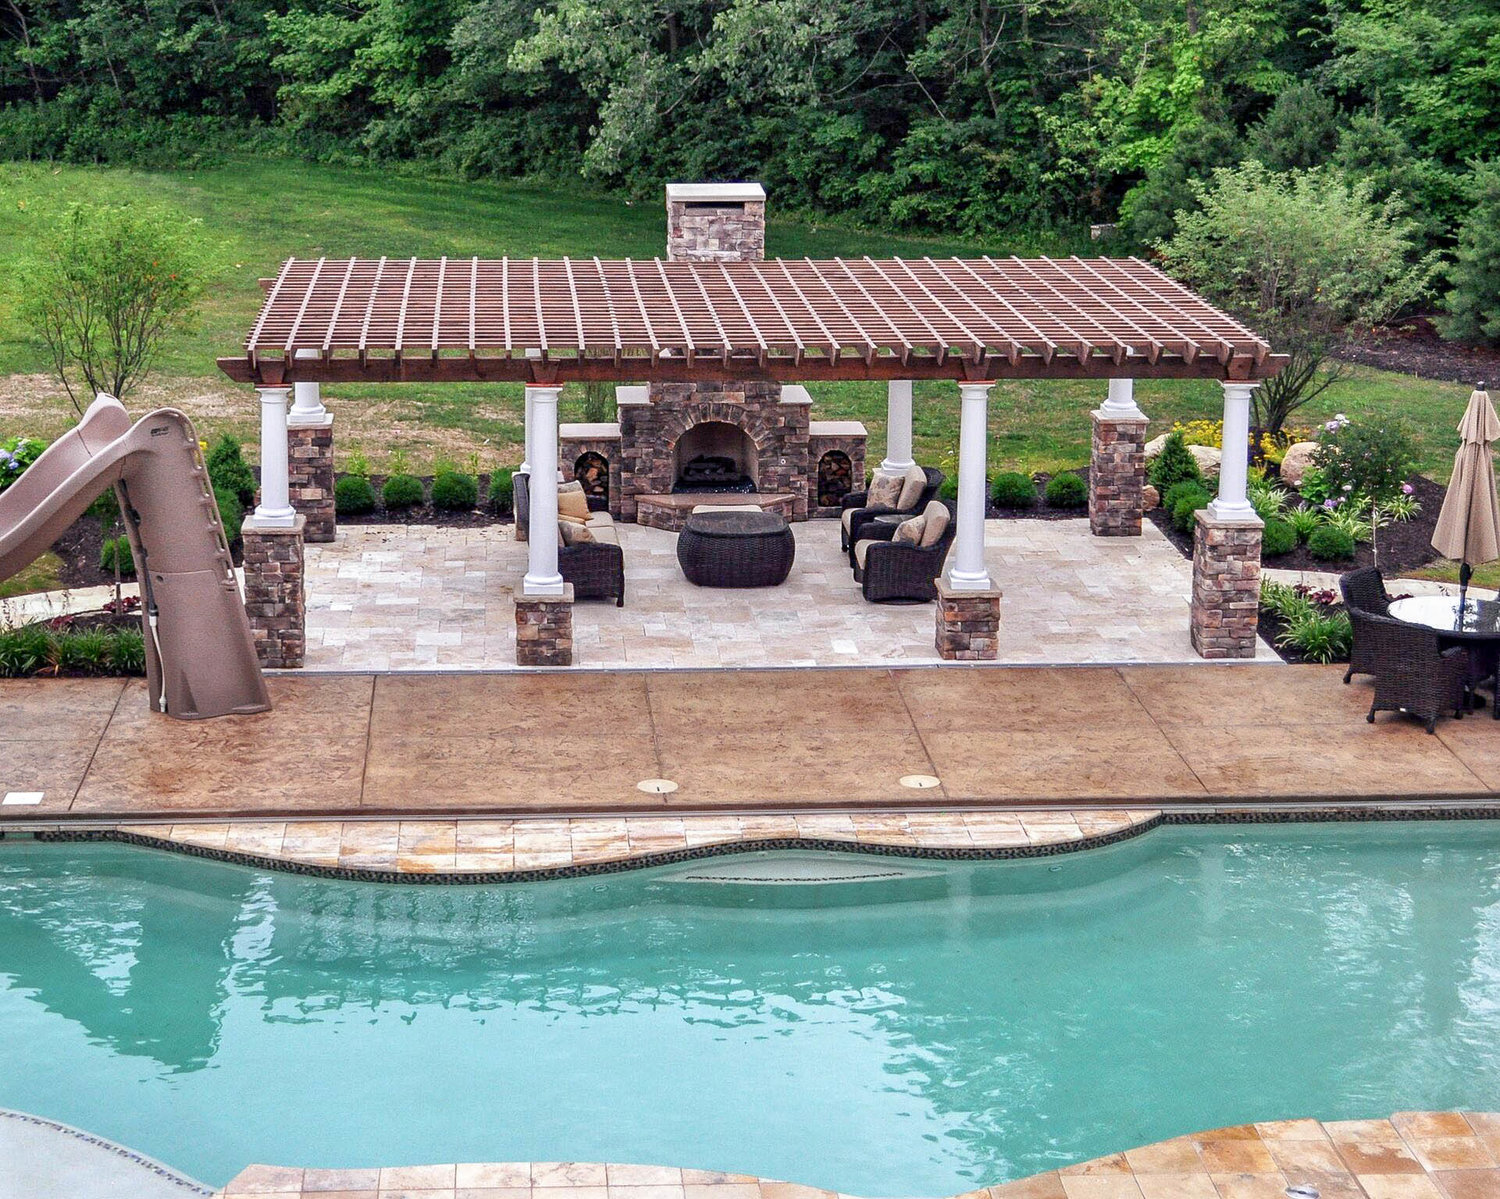 Summerbrook Outdoors - Thatcher Pools and Spas on Outdoor Kitchen By Pool id=62262